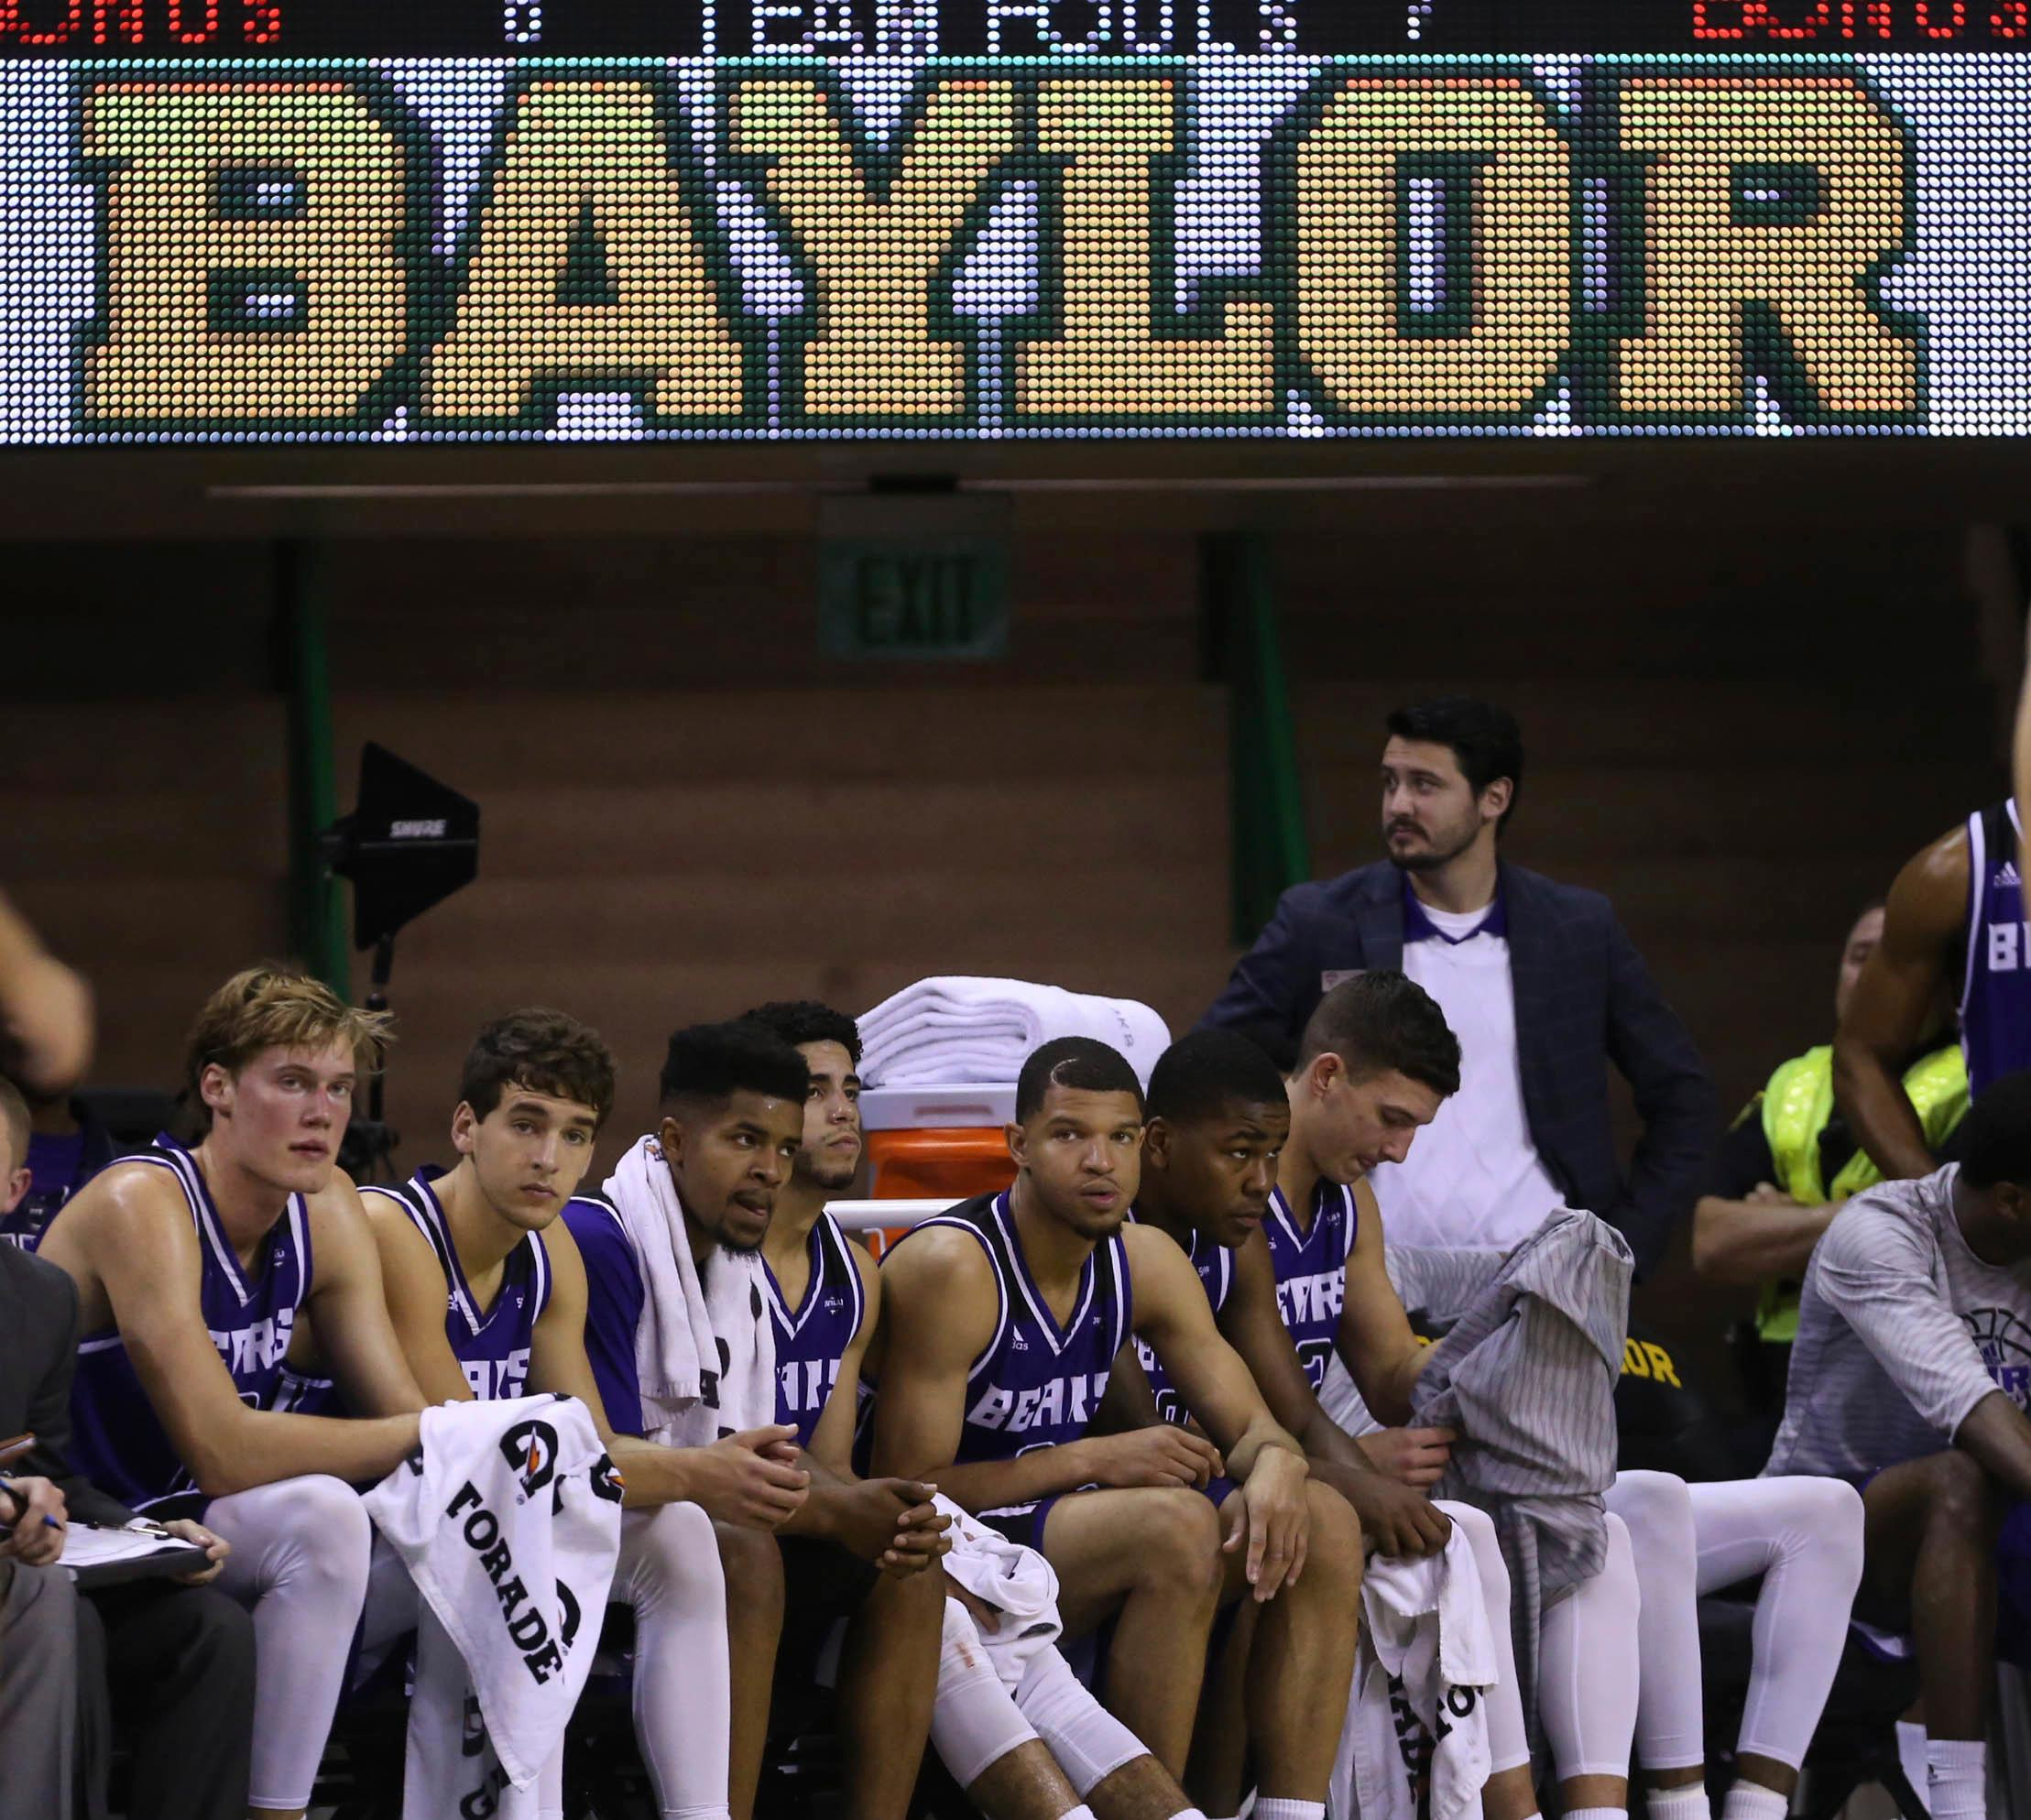 The Central Arkansas bench watch in the second half of a NCAA college basketball game against Baylor, Friday, Nov. 10, 2017, in Waco, Tx. Baylor won 107-66. (AP Photo/Jerry Larson)